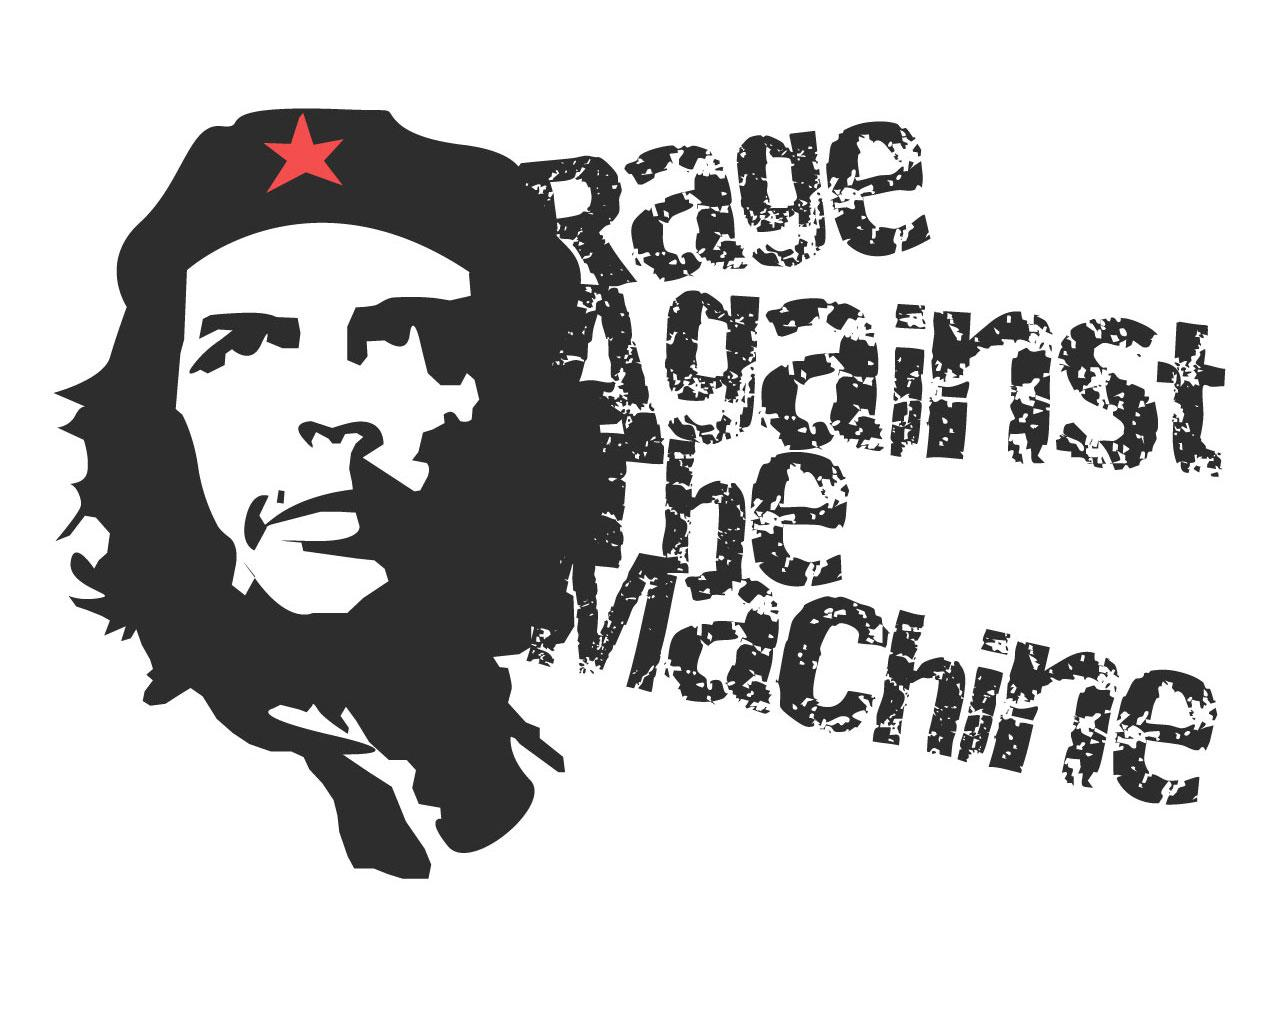 Free download ROCK N ROLL ALL NIGHT WALLPAPER RAGE AGAINST